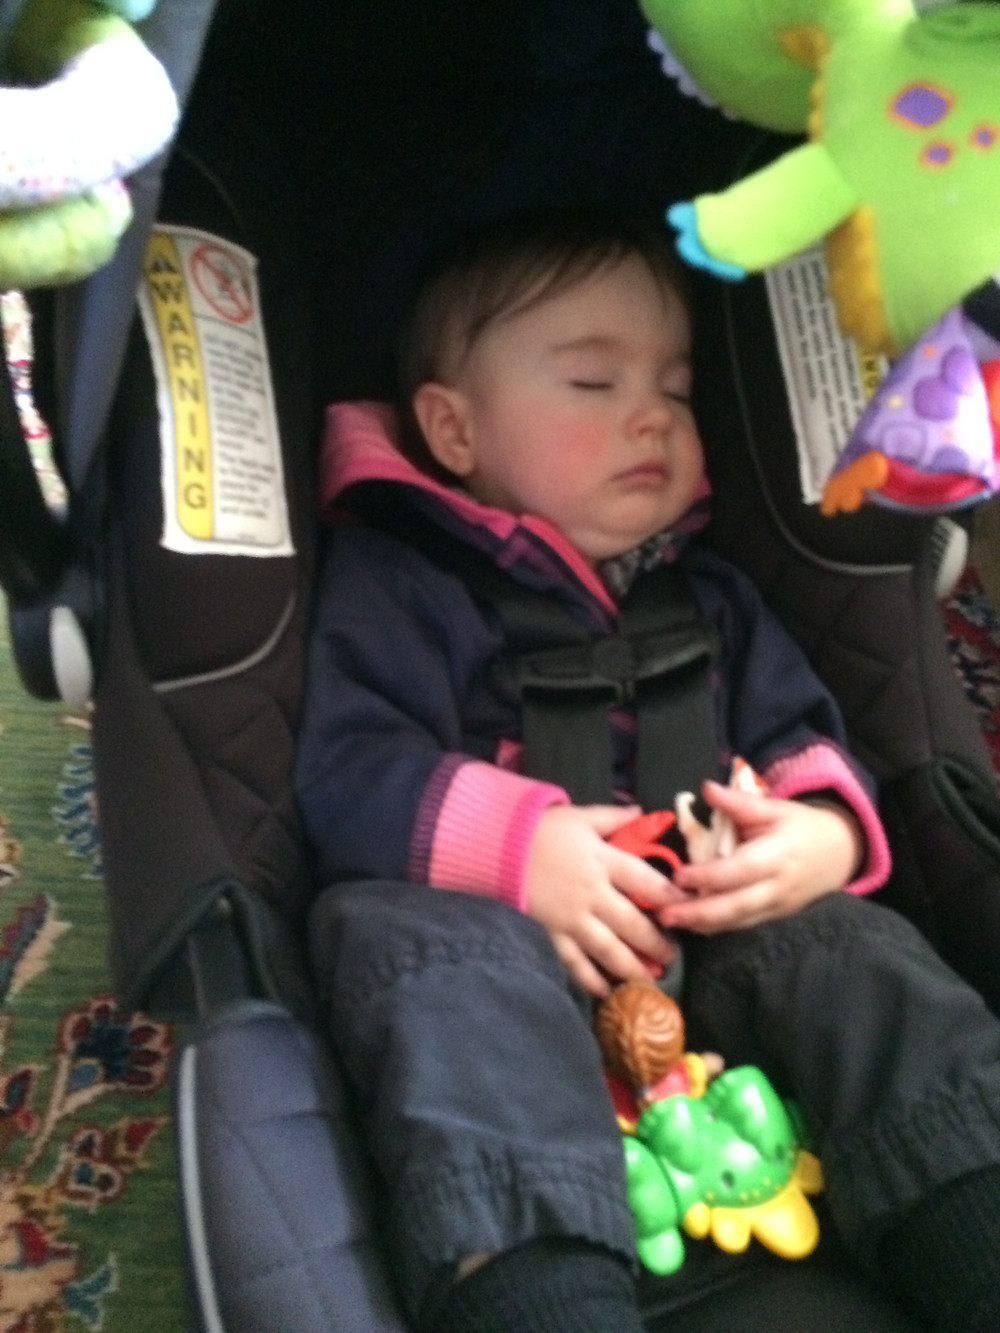 Picture of baby asleep in a car seat holding toy dinosaur.